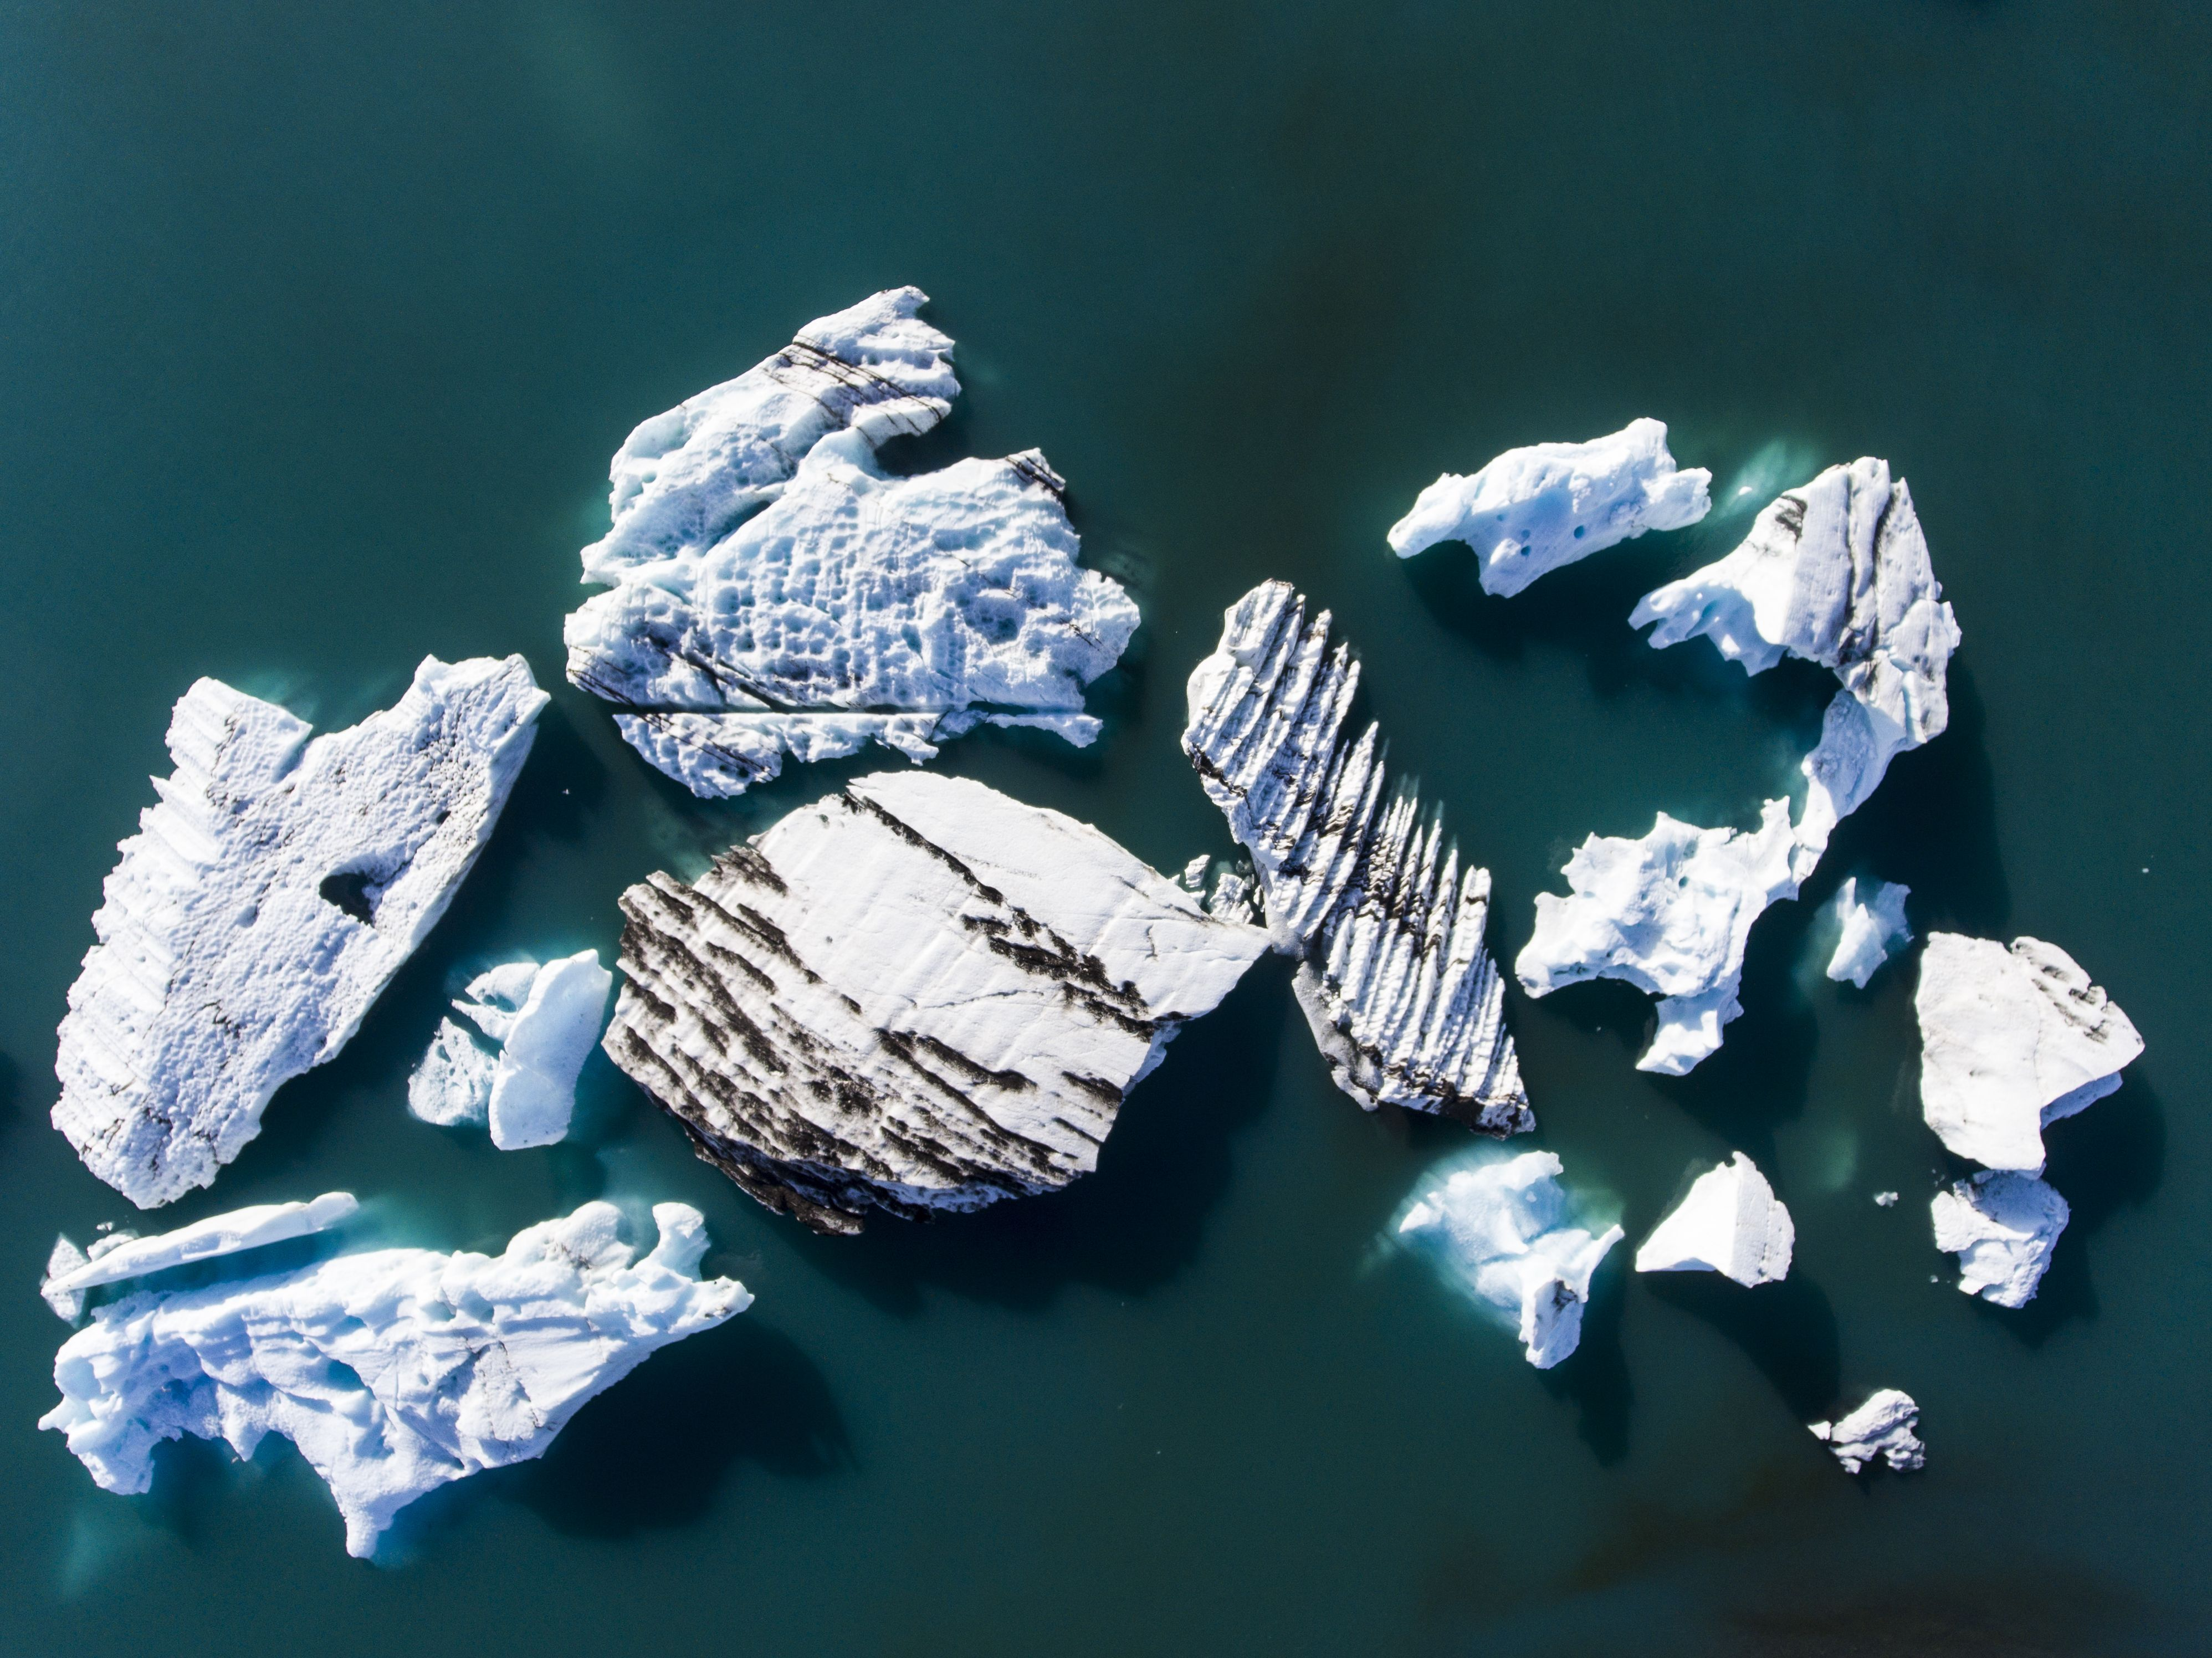 Chunks of ice in an Icelandic glacial lagoon reveal ages of wear and tear in this National Geographic Your Shot Photo of the Day.